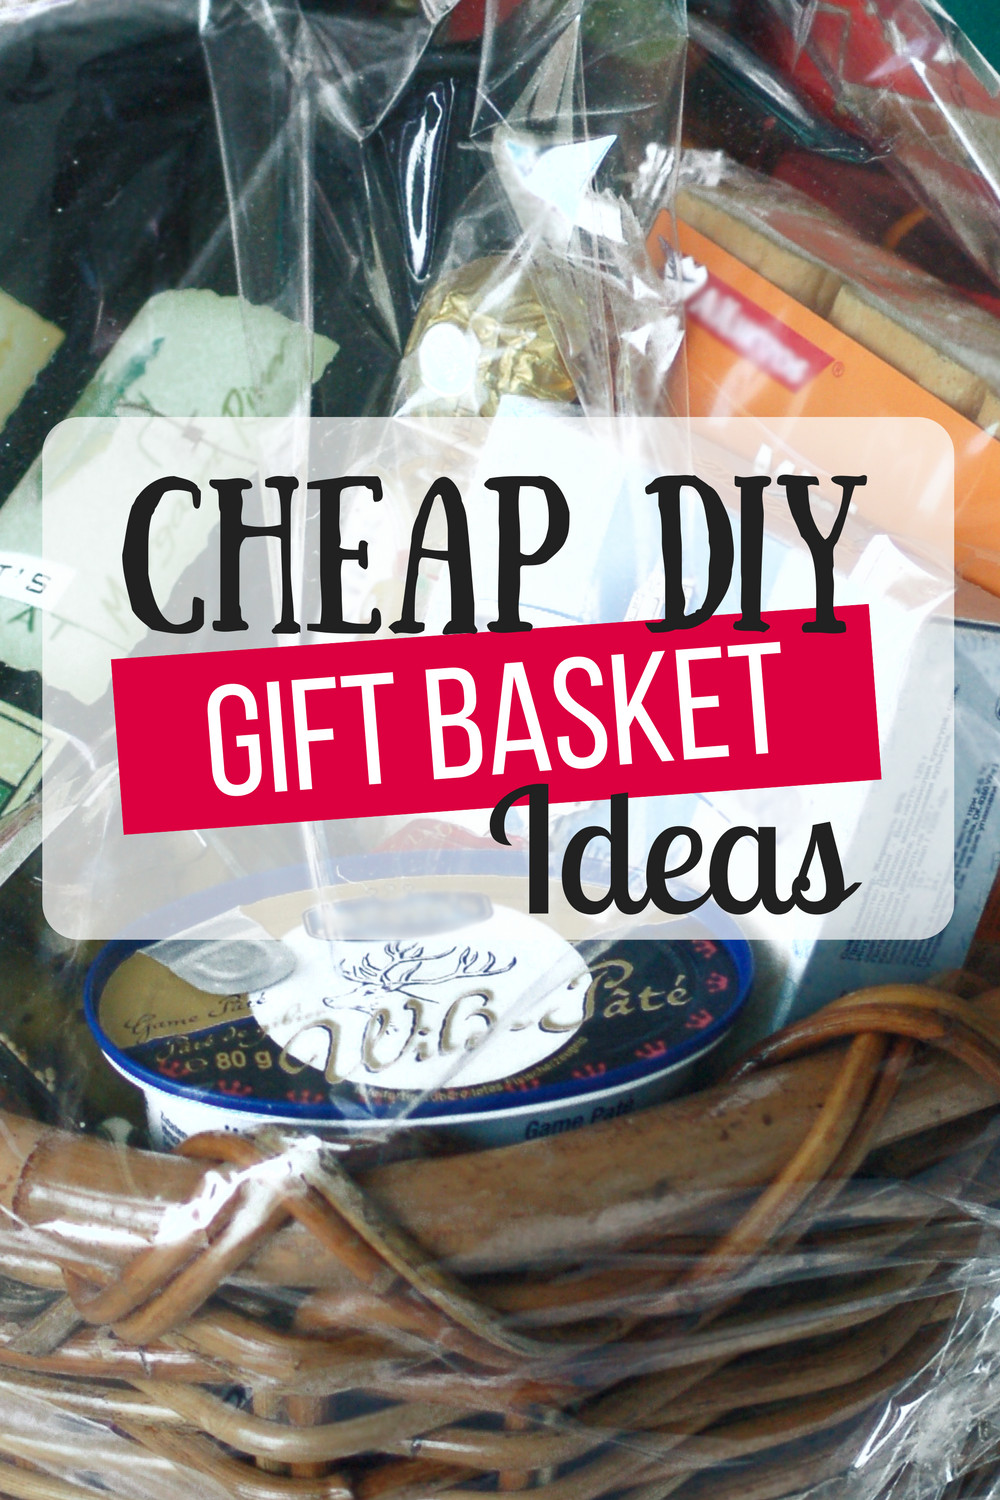 Best ideas about Gift Basket Ideas . Save or Pin Cheap DIY Gift Baskets The Busy Bud er Now.